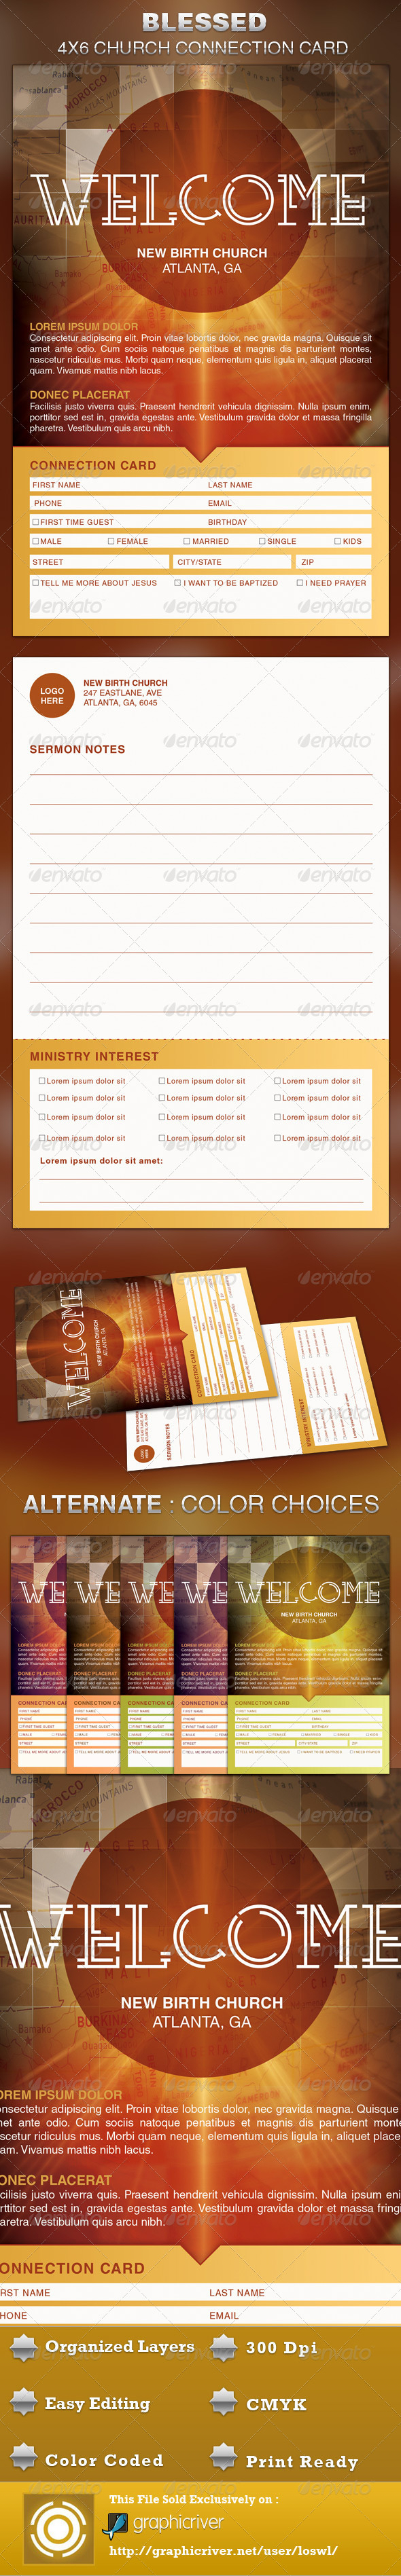 The Blessed Church Connection Card Template Is Great For Any With Decision Card Template